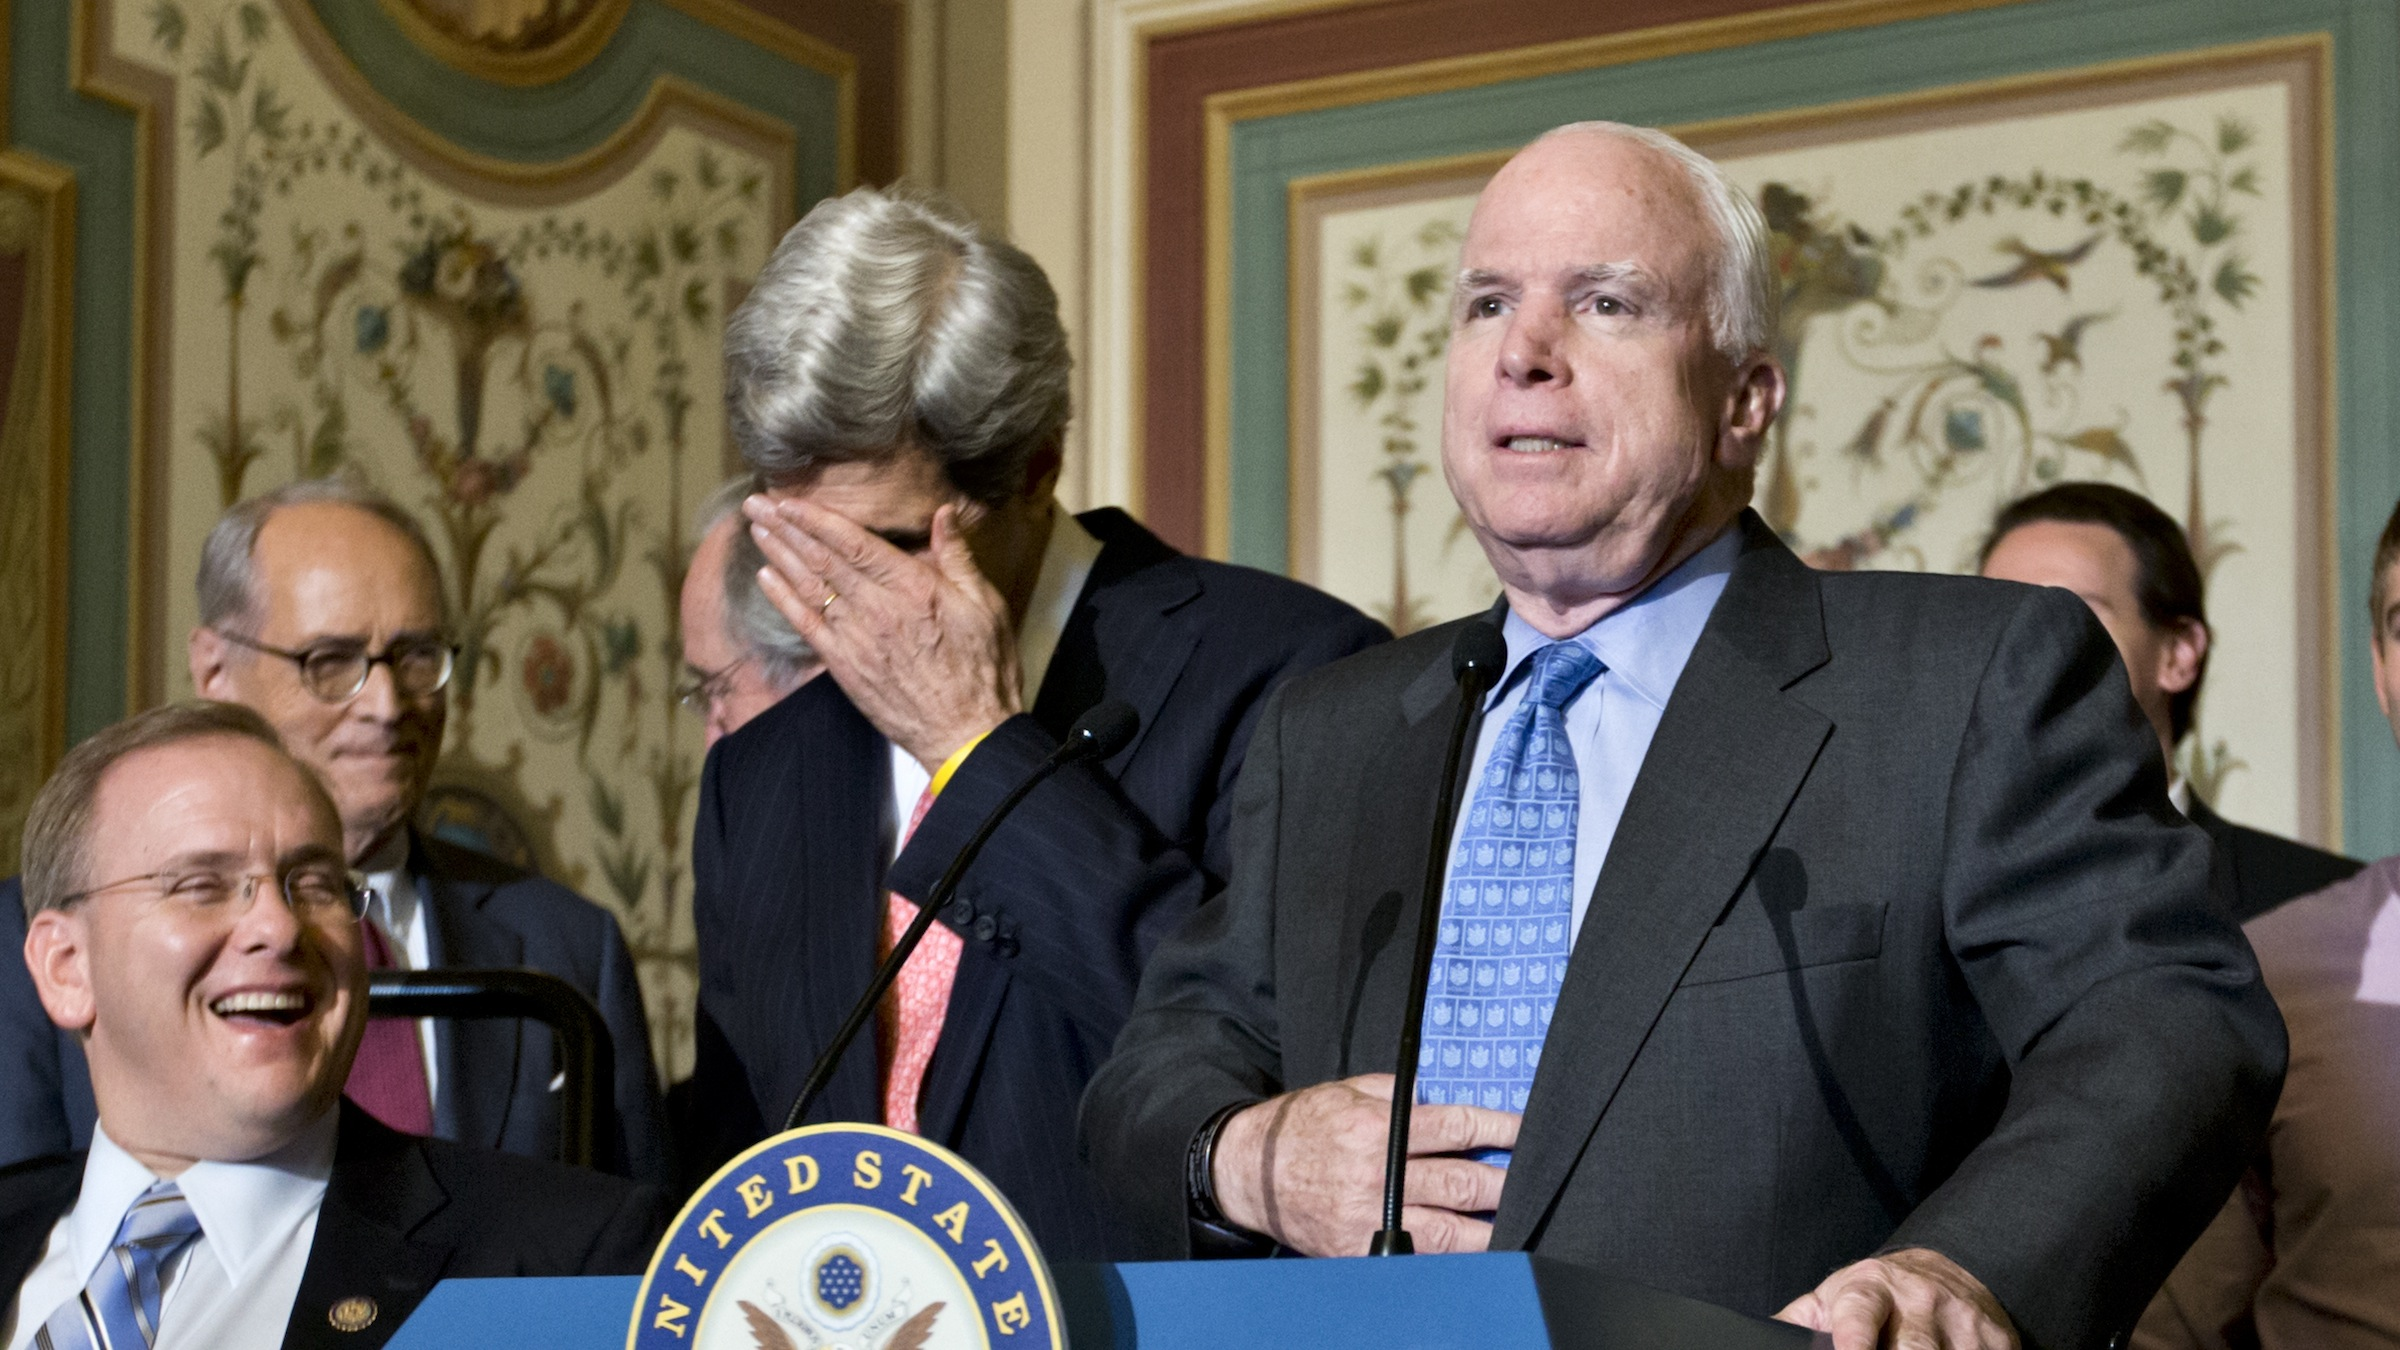 """Sen. John Kerry, D-Mass., left center, reacts as Sen. John McCain, R-Ariz., center, has some fun at the expense of his friend and Democratic colleague during a news conference on Capitol Hill in Washington, Monday, Dec. 3, 2102, on a disabilities treaty. Responding to a Kerry introduction at a news conference on a disabilities treaty, McCain said, """"thank you very much, Mr. Secretary,"""" a reference to the recent talk that Kerry is a top candidate to replace Secretary of State Hillary Rodham Clinton. """"Thank you very much Mr. President,"""" Kerry said later when he returned to the microphone to McCain, who unsuccessfully sought the presidency in 2000 and 2008. From left are, Rep. Jim Langevin, D-R.I., former Attorney General Richard Thornburgh, Sen. Tom Harkin, D-Iowa, Kerry and McCain.   (AP Photo/J. Scott Applewhite)"""